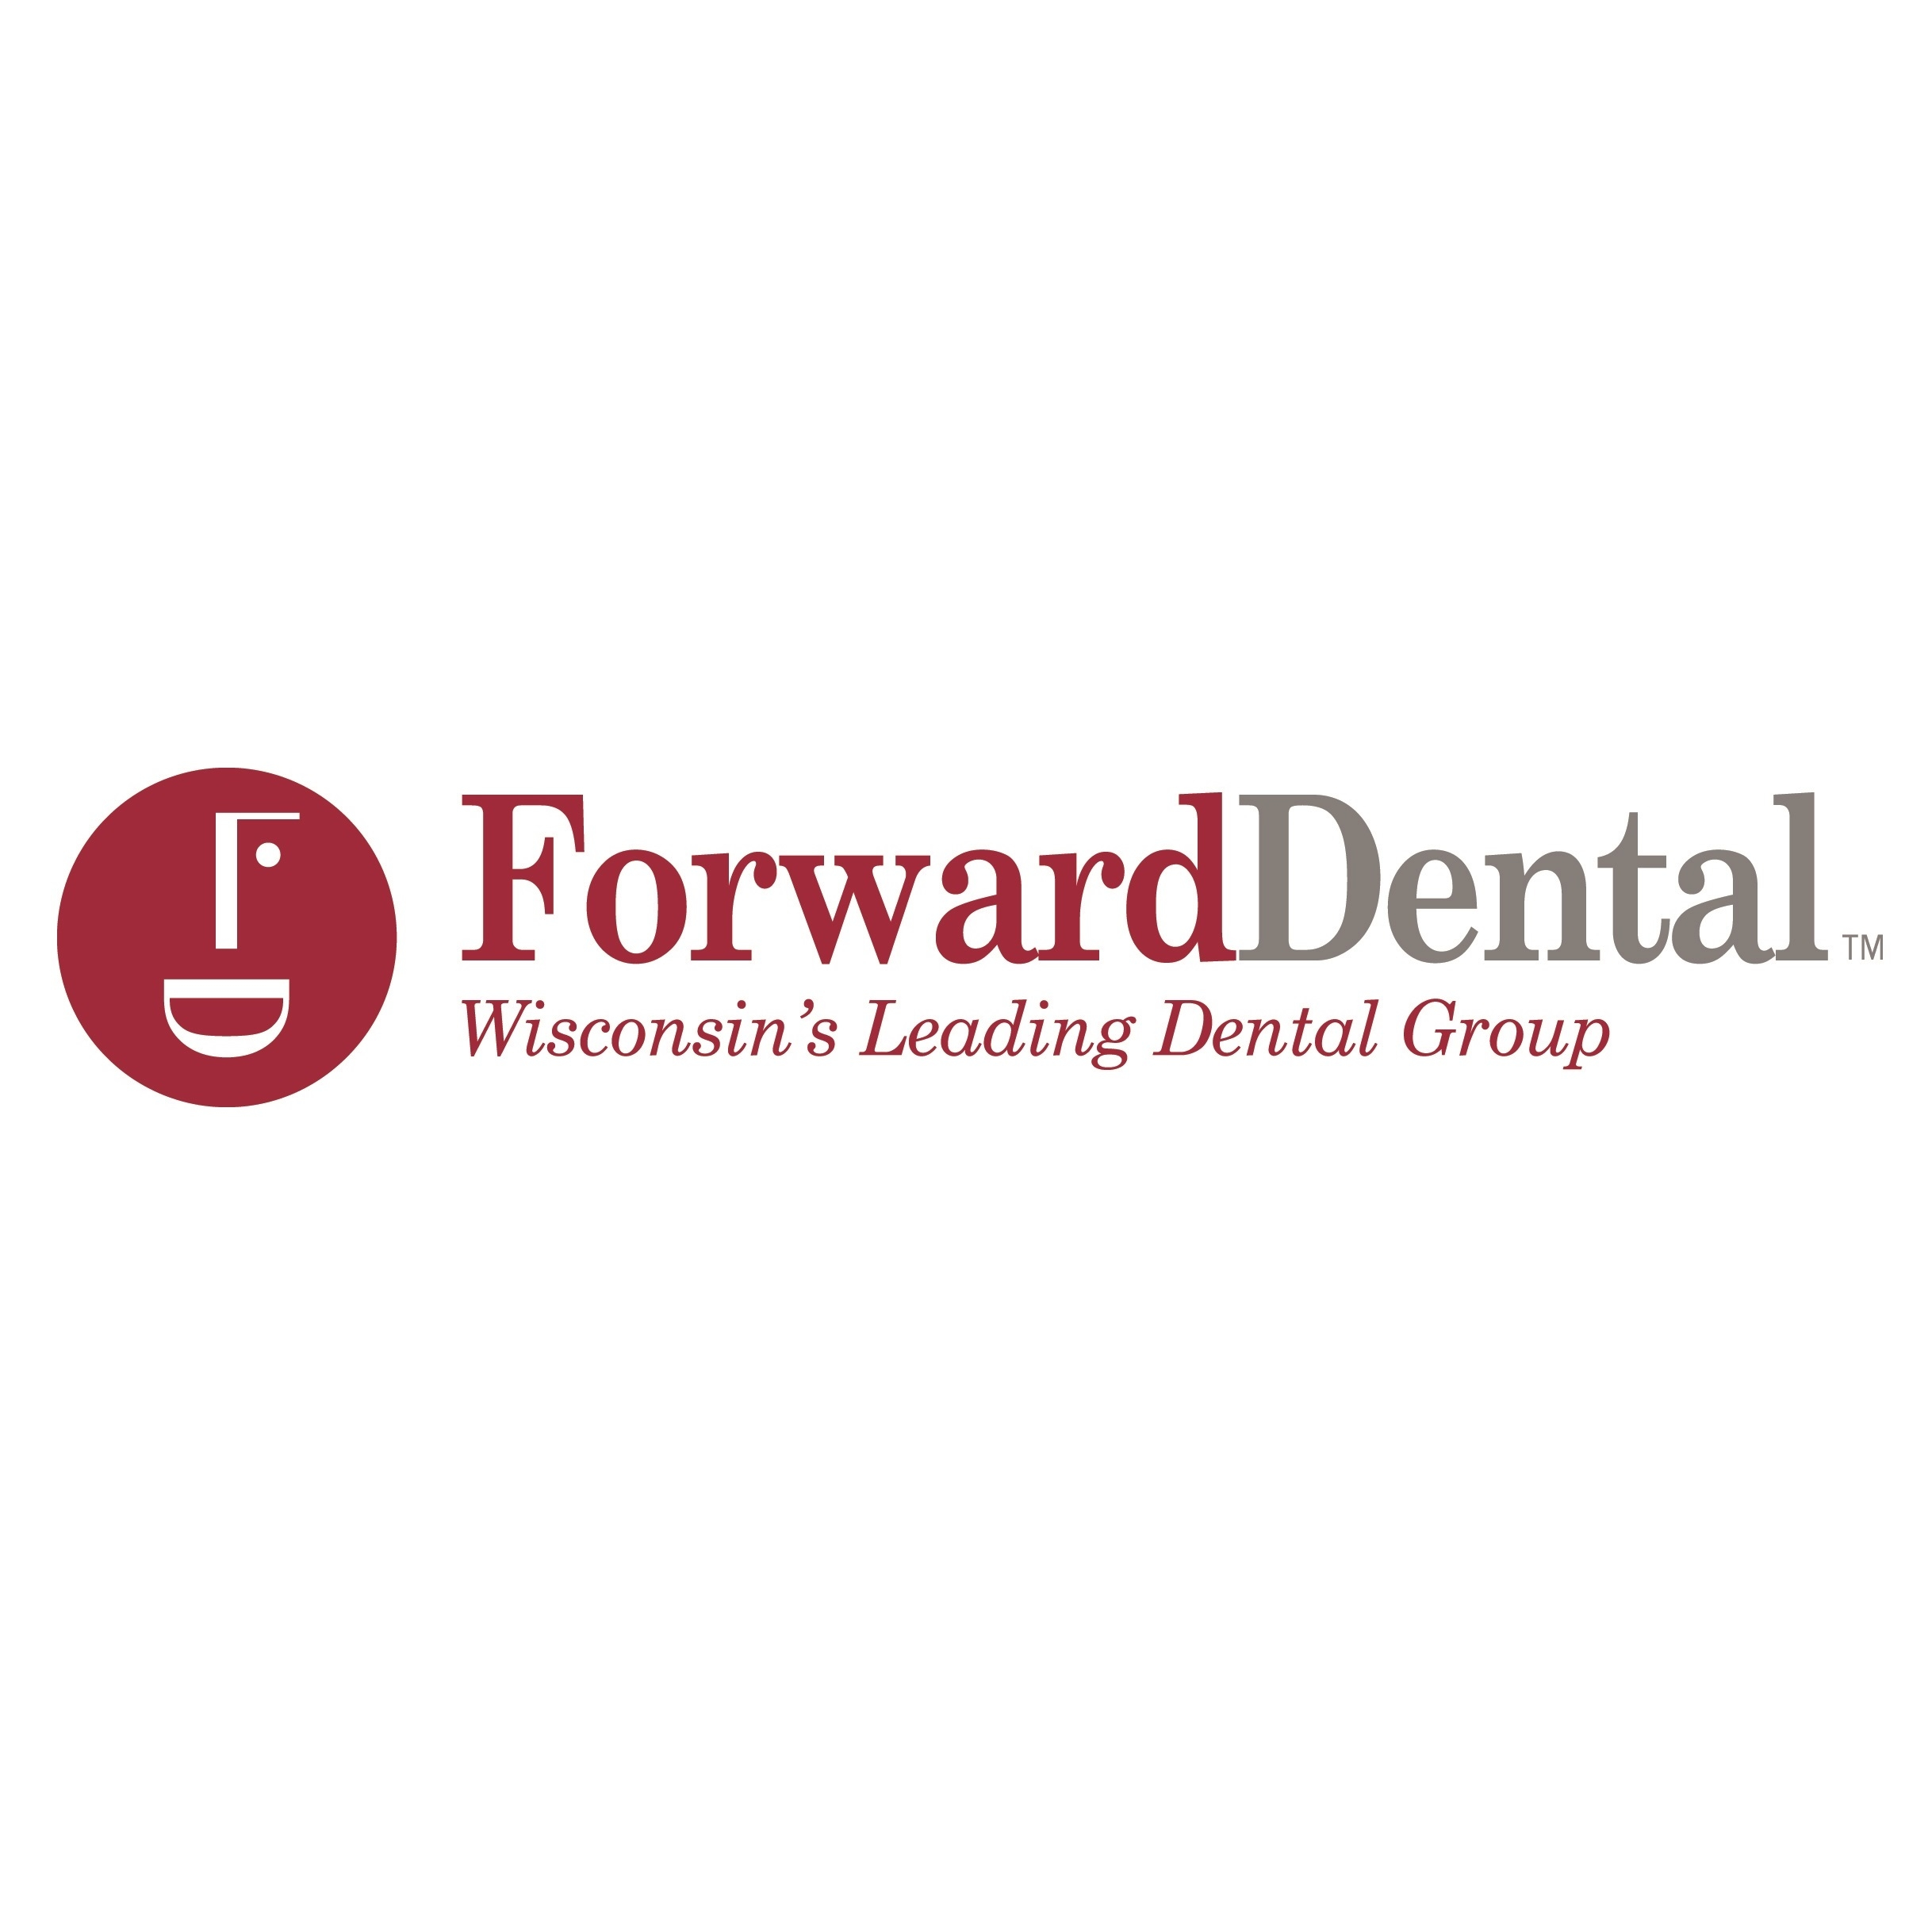 Edmund Jung, DDS - ForwardDental